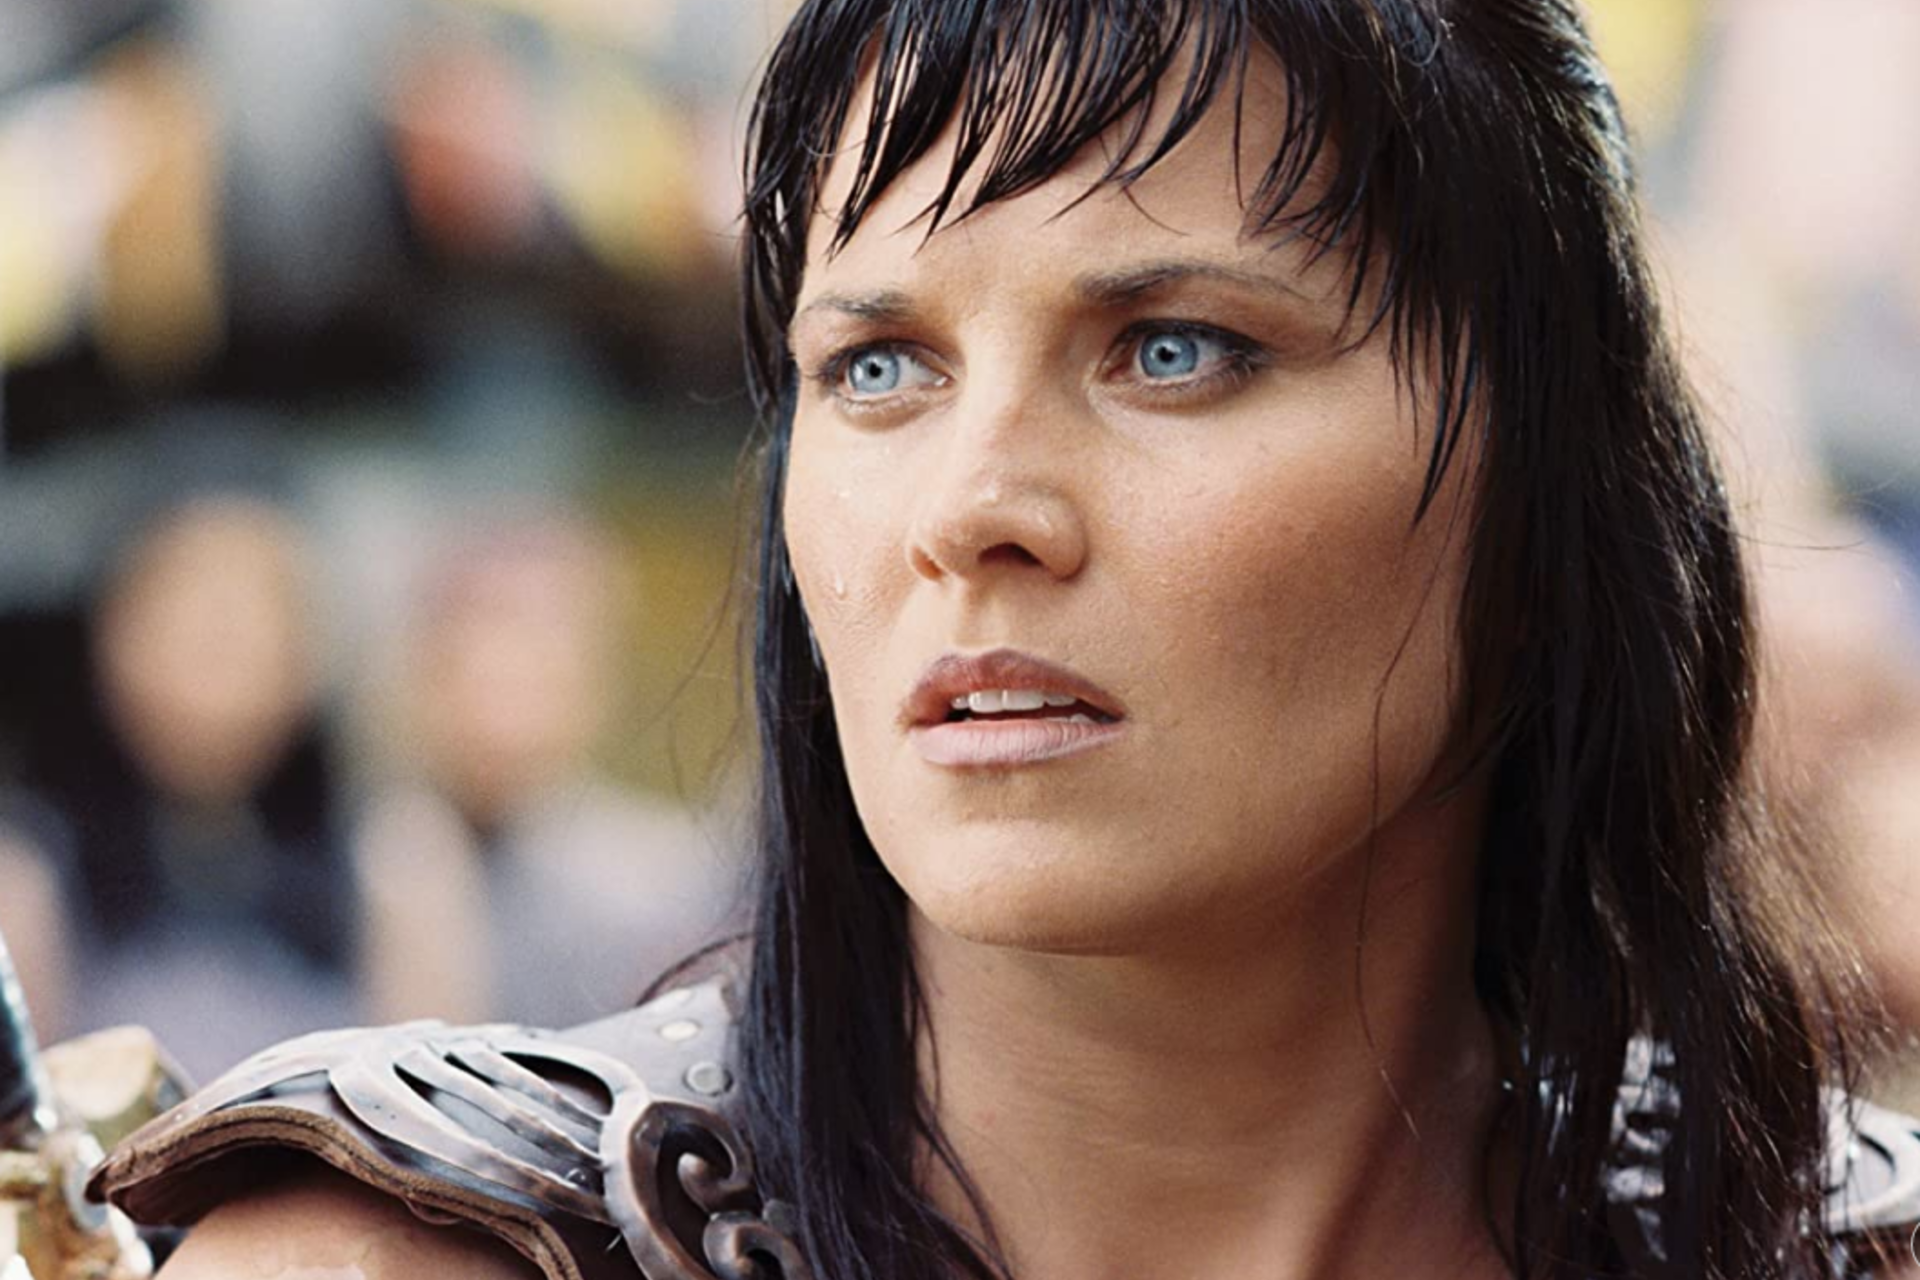 Xena, Warrior Princess: Whatever happened to actress Lucy Lawless?